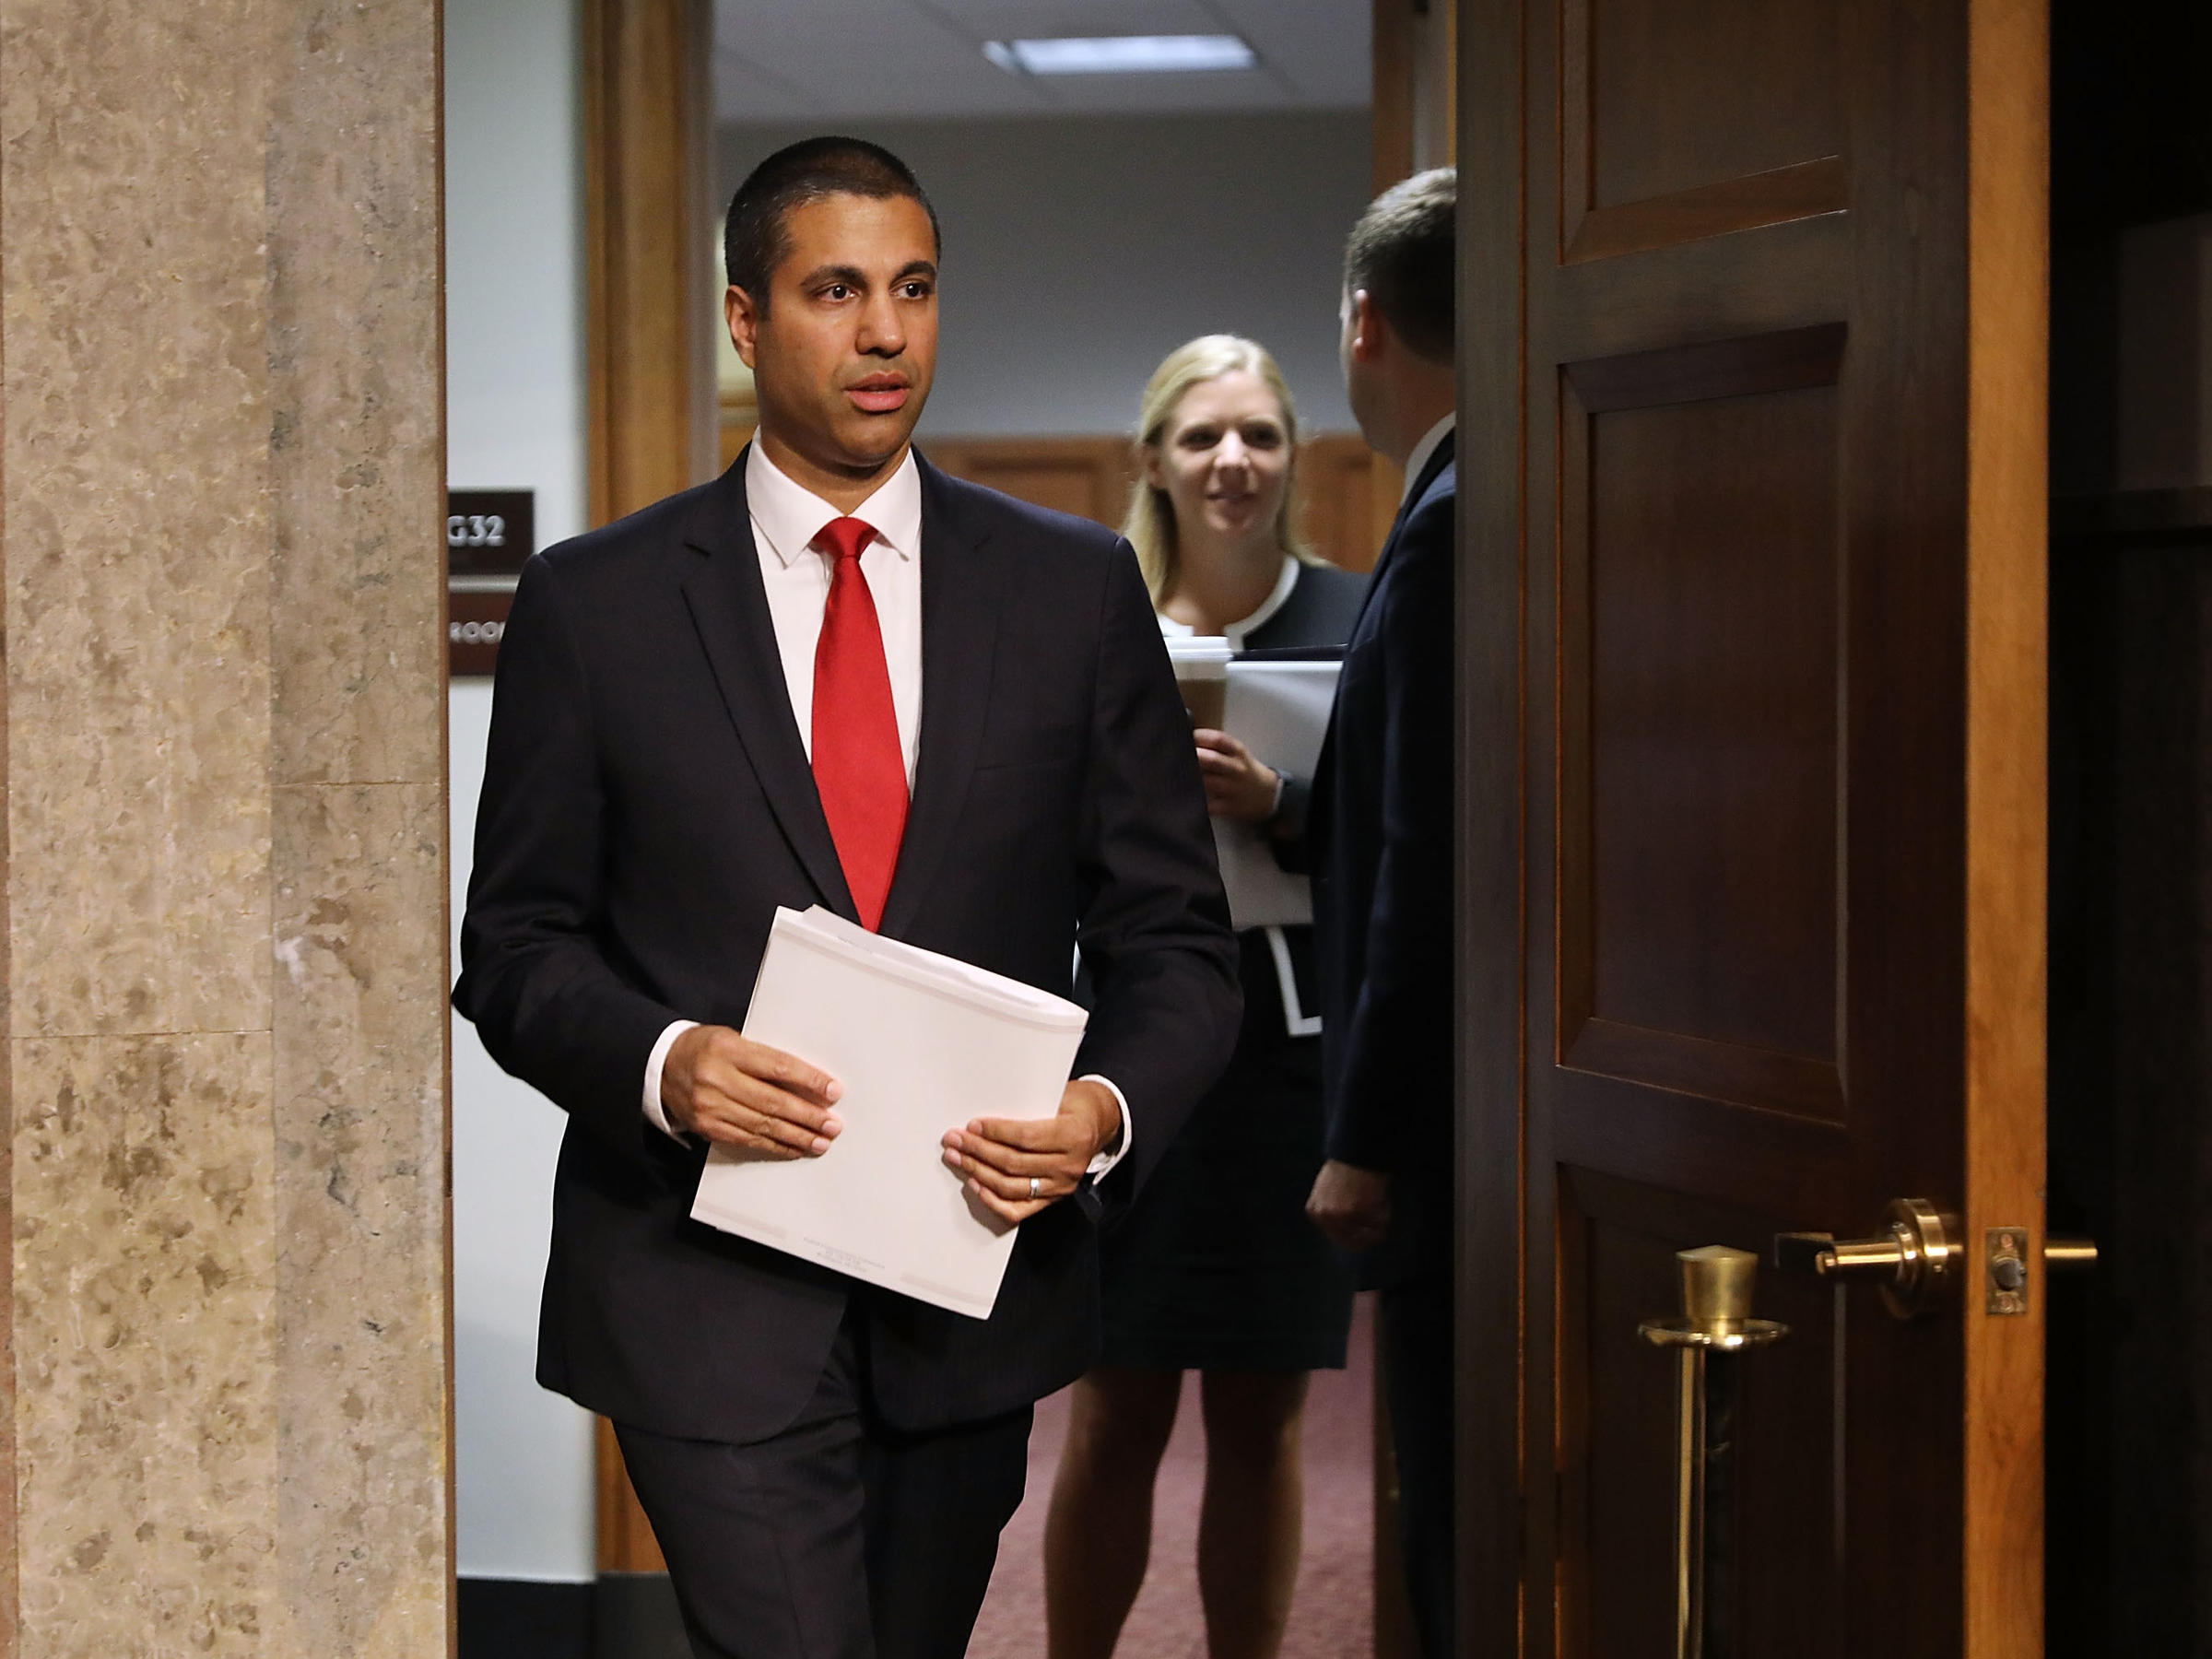 Fcc Chairman Ajit Pai Has Unveiled His Plan To Undo The 2015 Net Neutrality Rules That Had Placed Internet Providers Under The Strictest Ever Regulatory